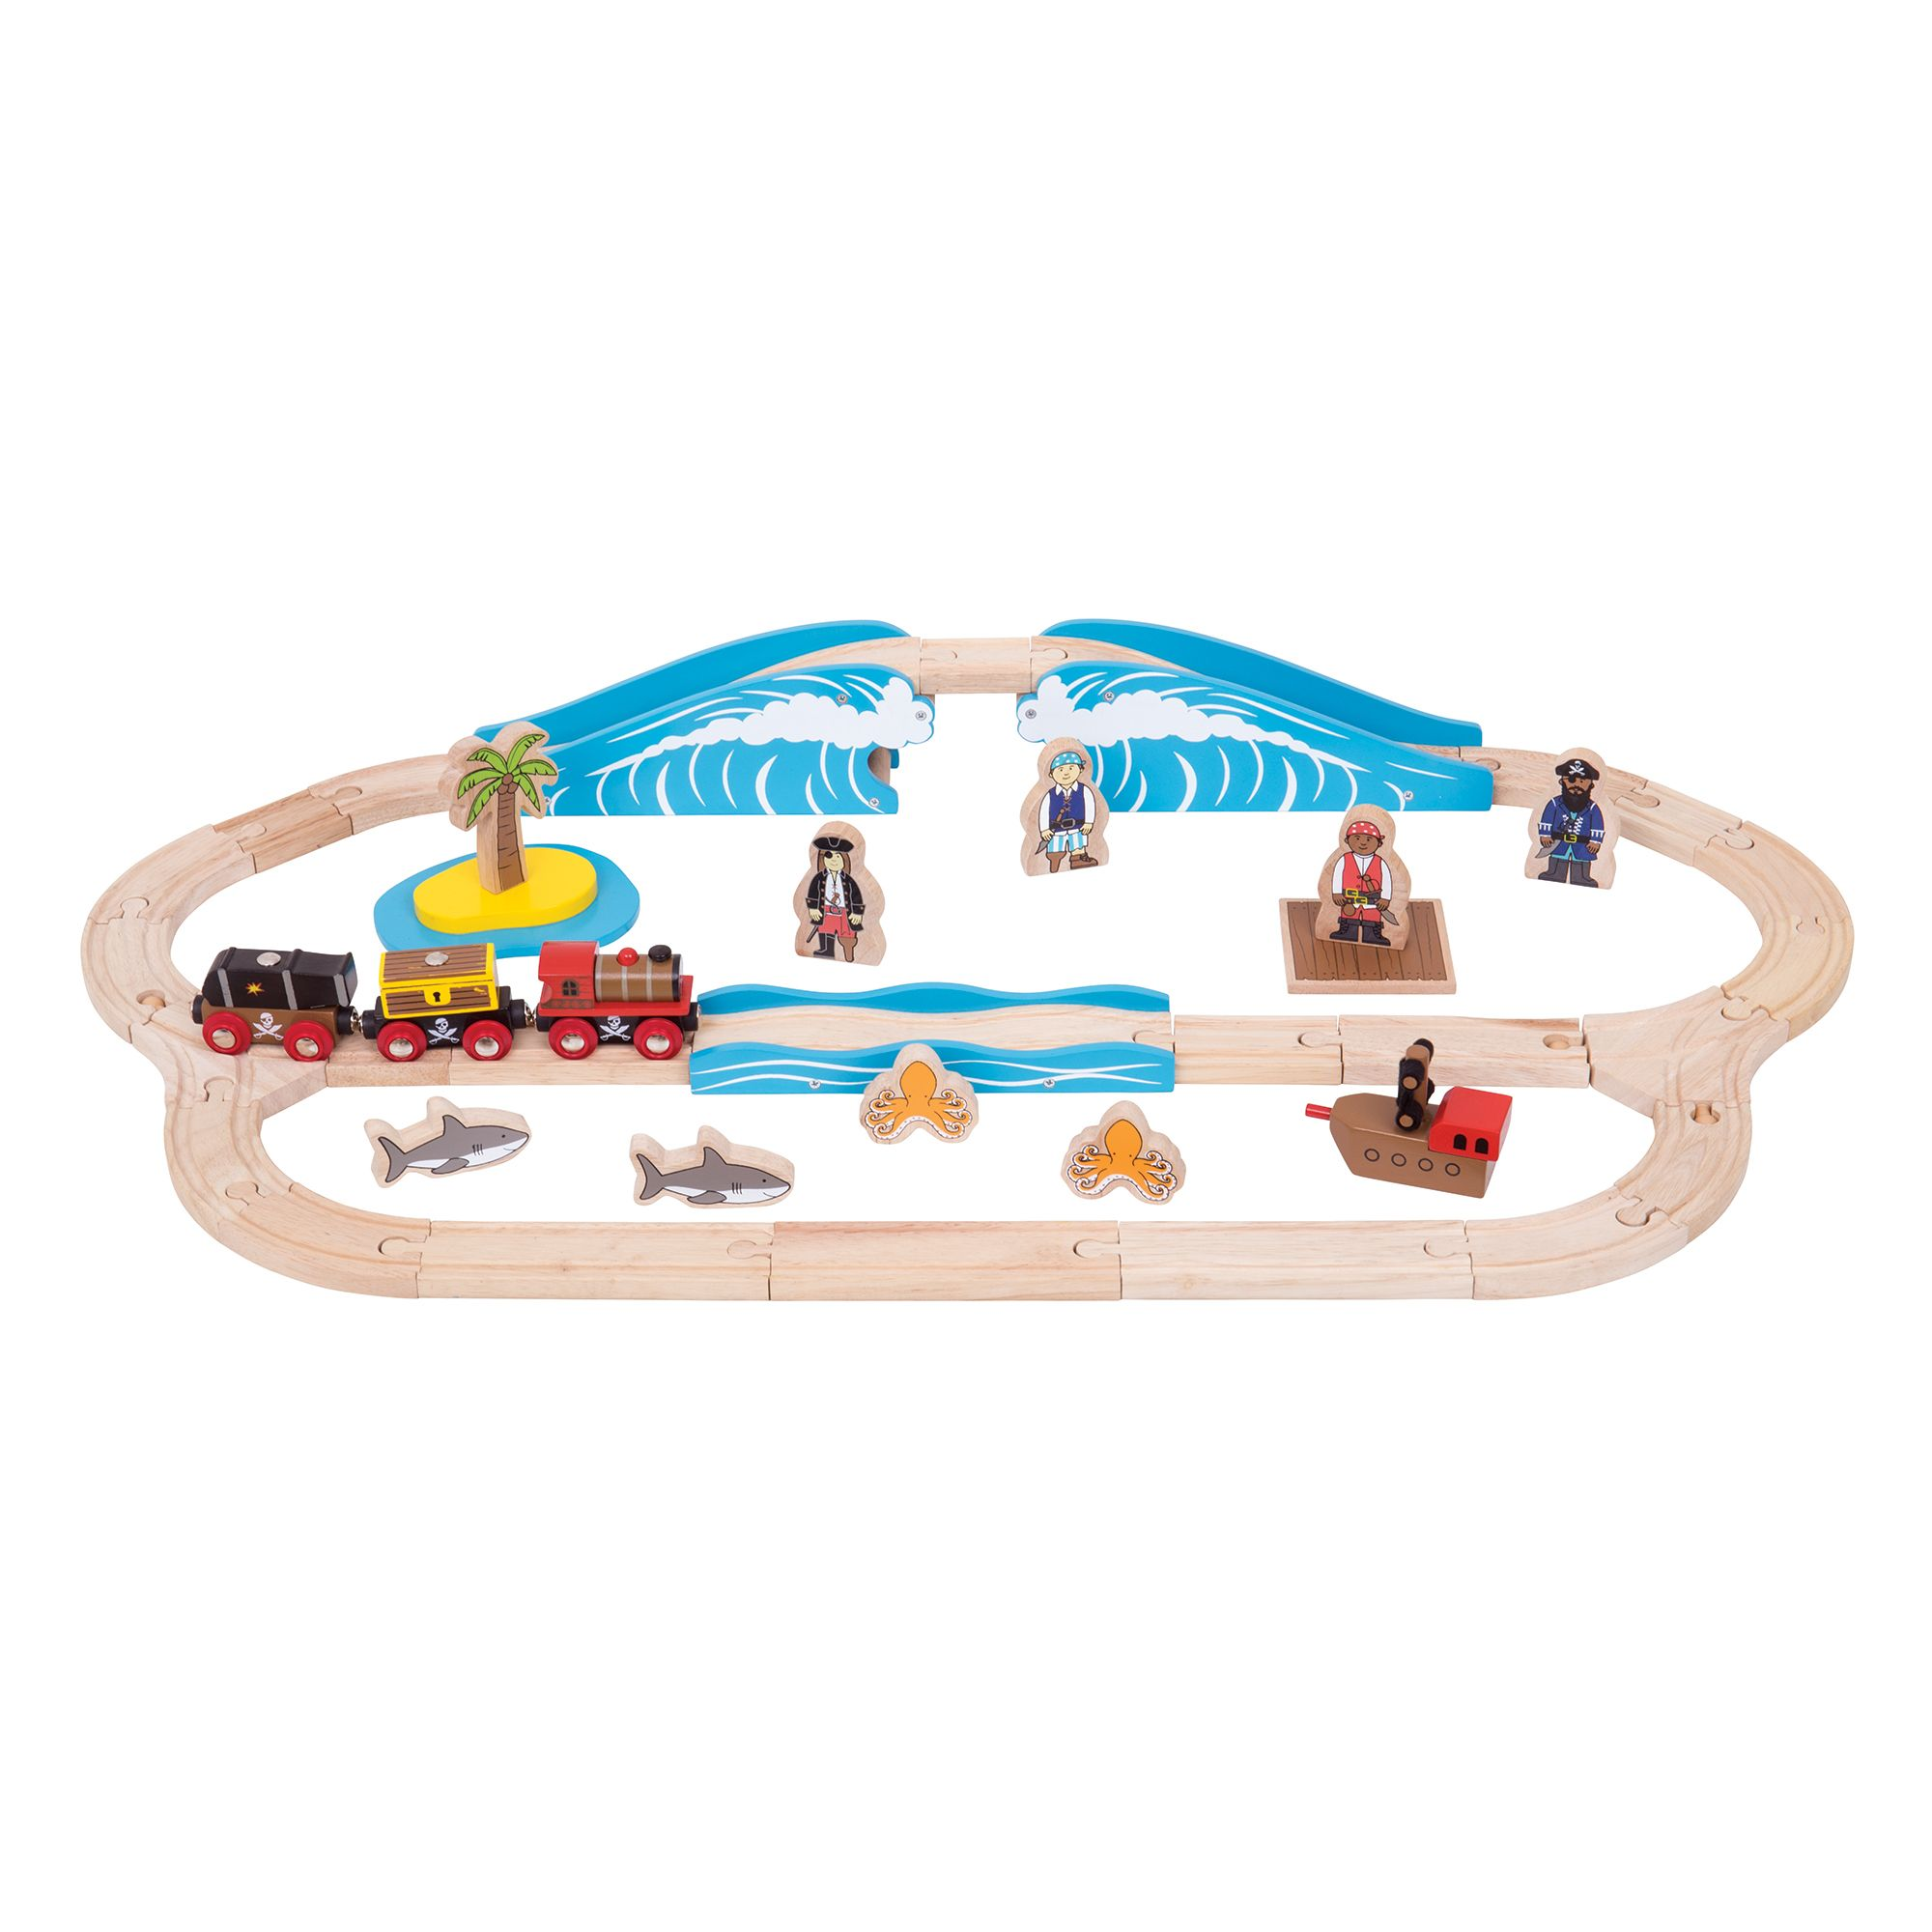 Bigjigs Rail Pirate Train Set